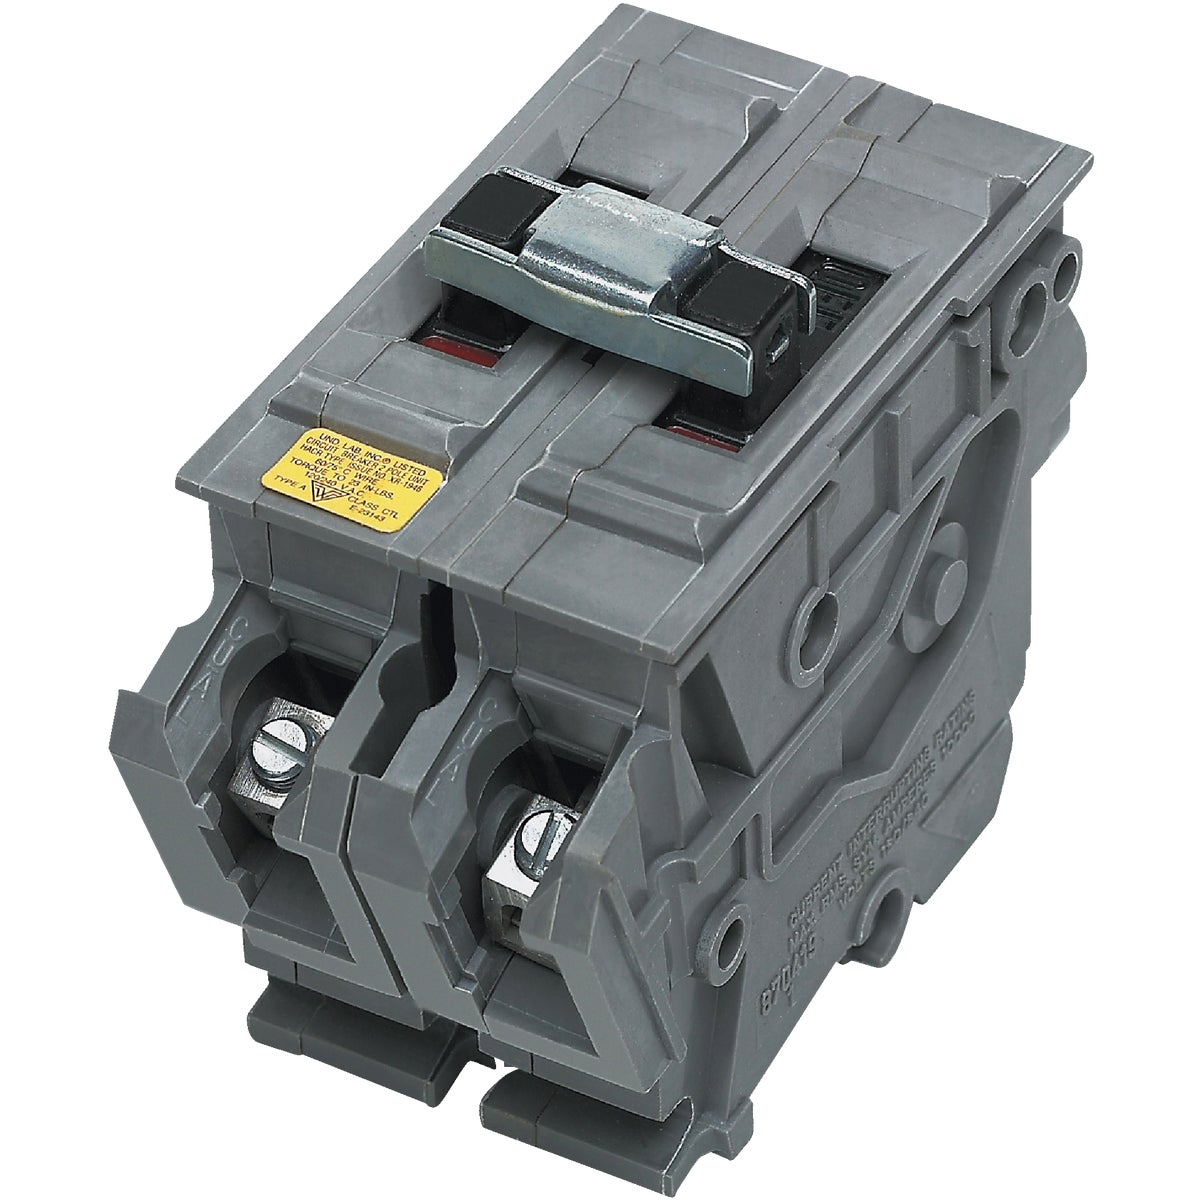 30A 2P CIRCUIT BREAKER - WA230 by Connecticut Electric